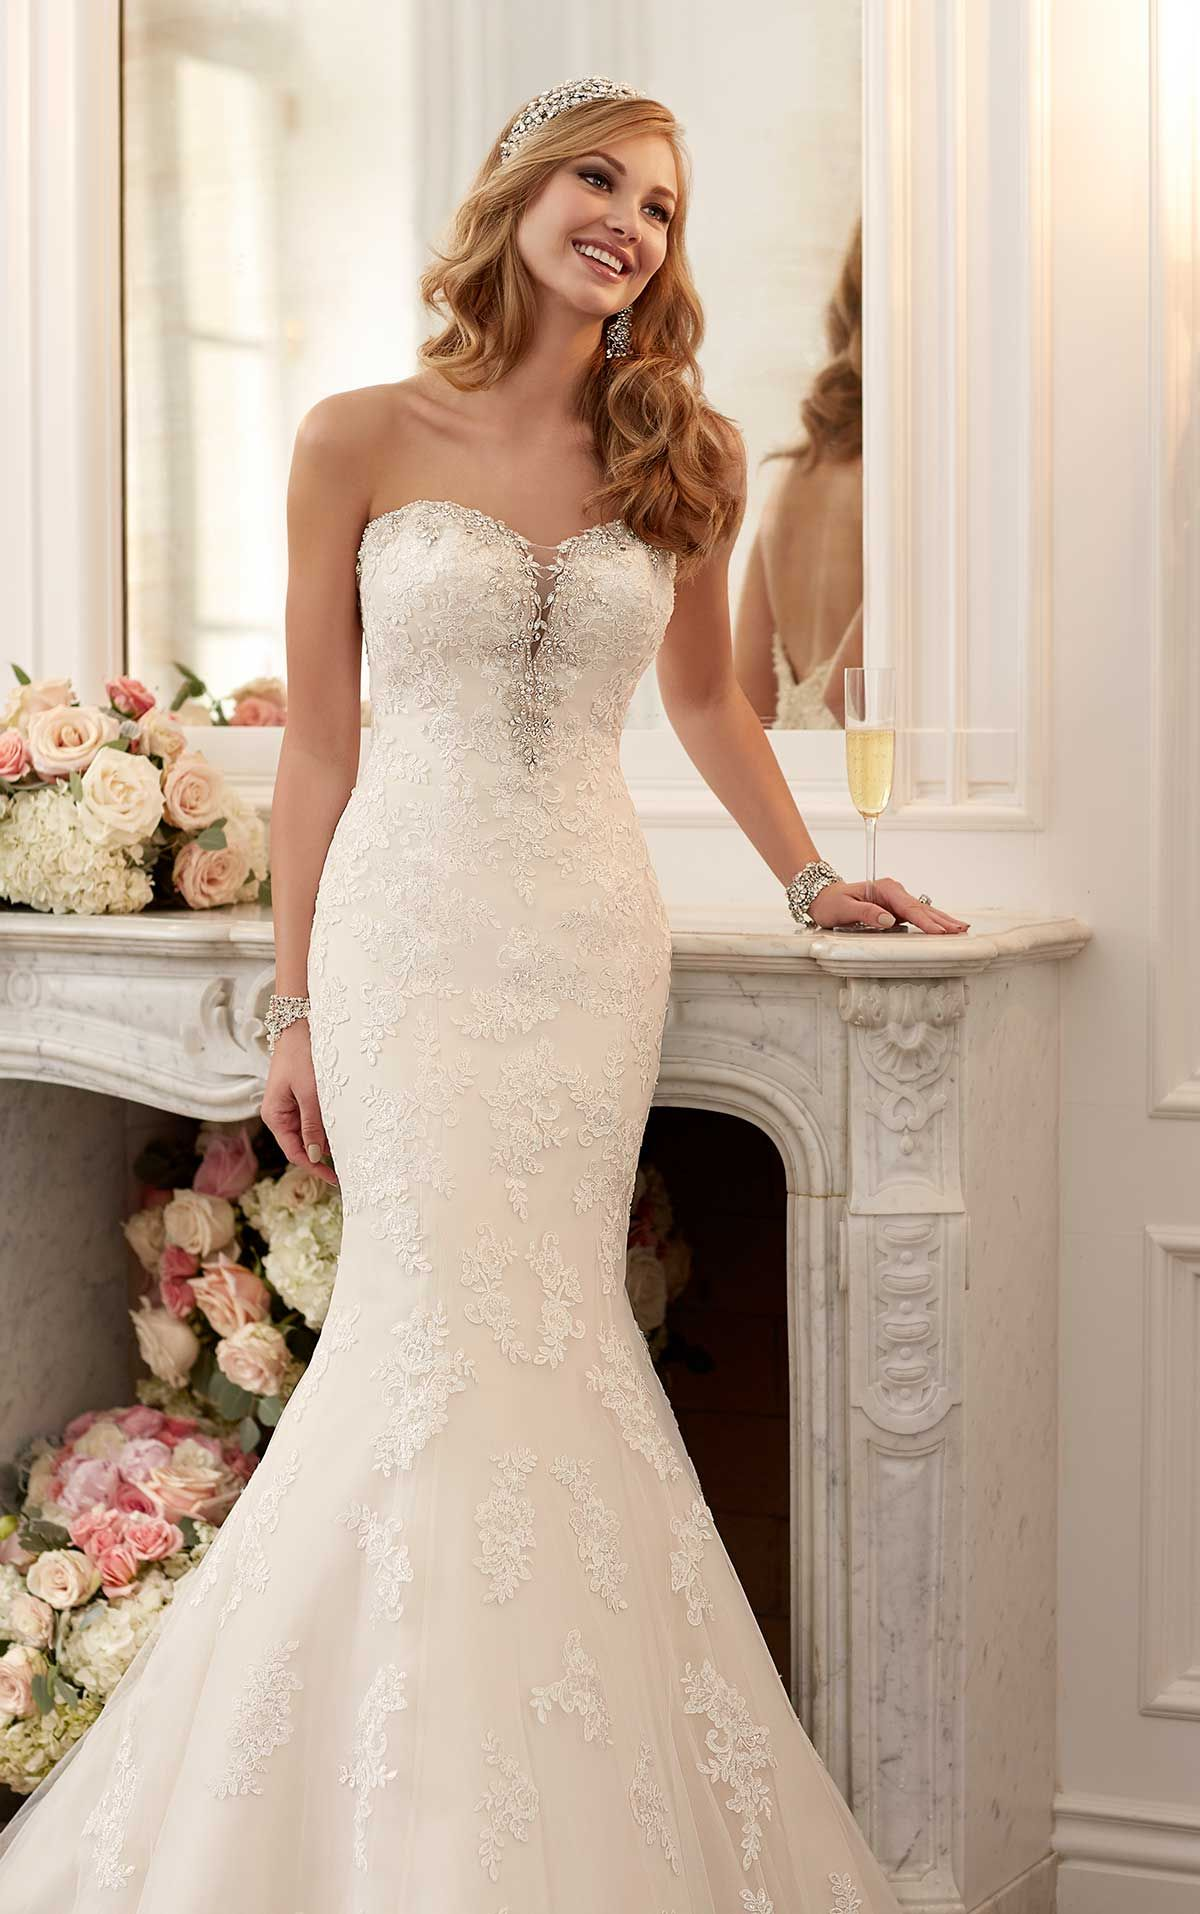 Dreaming of a romantic wedding dress that is as sexy as it is chic